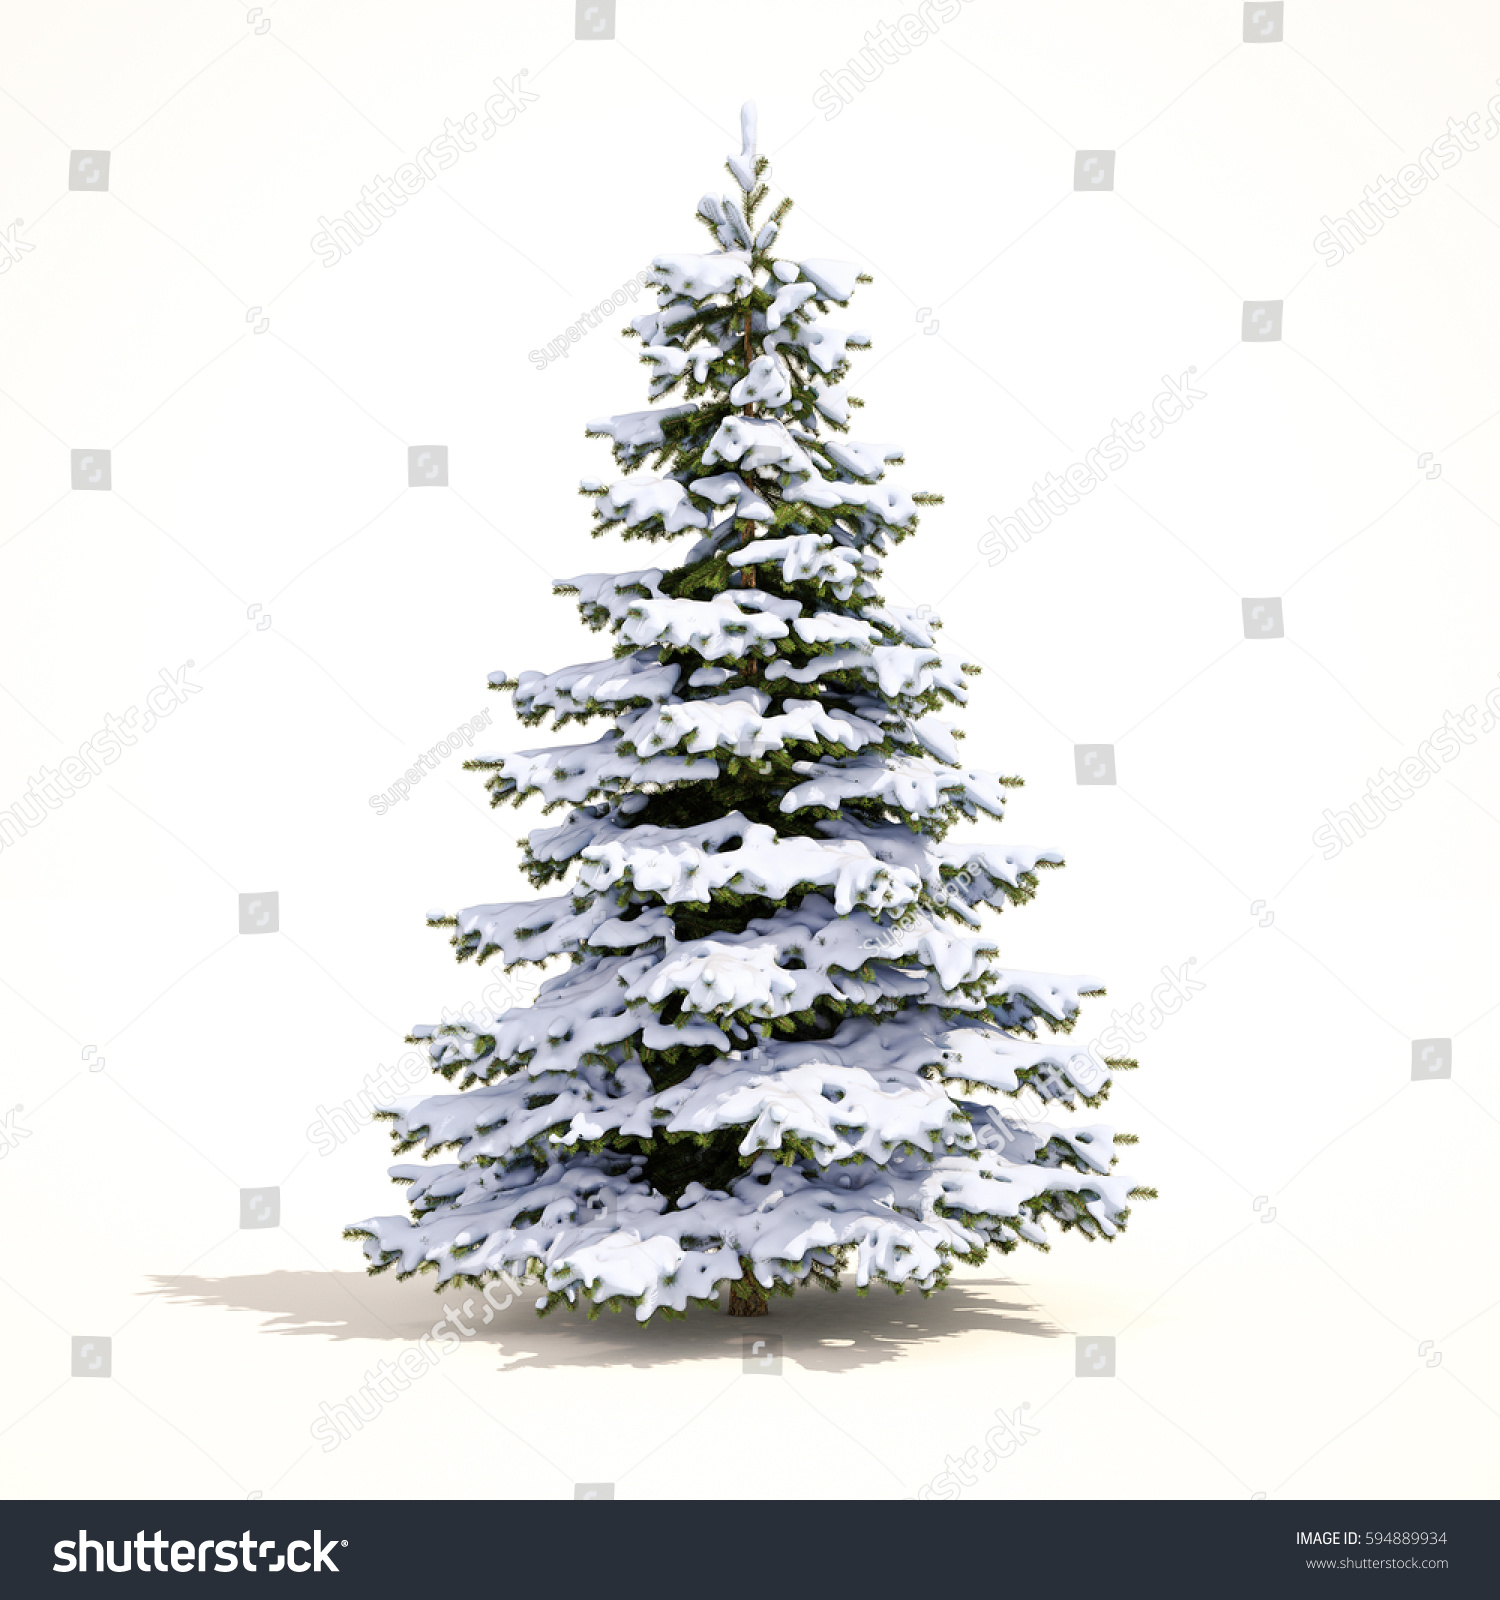 snow covered christmas tree on white background christmas tree background noel tree